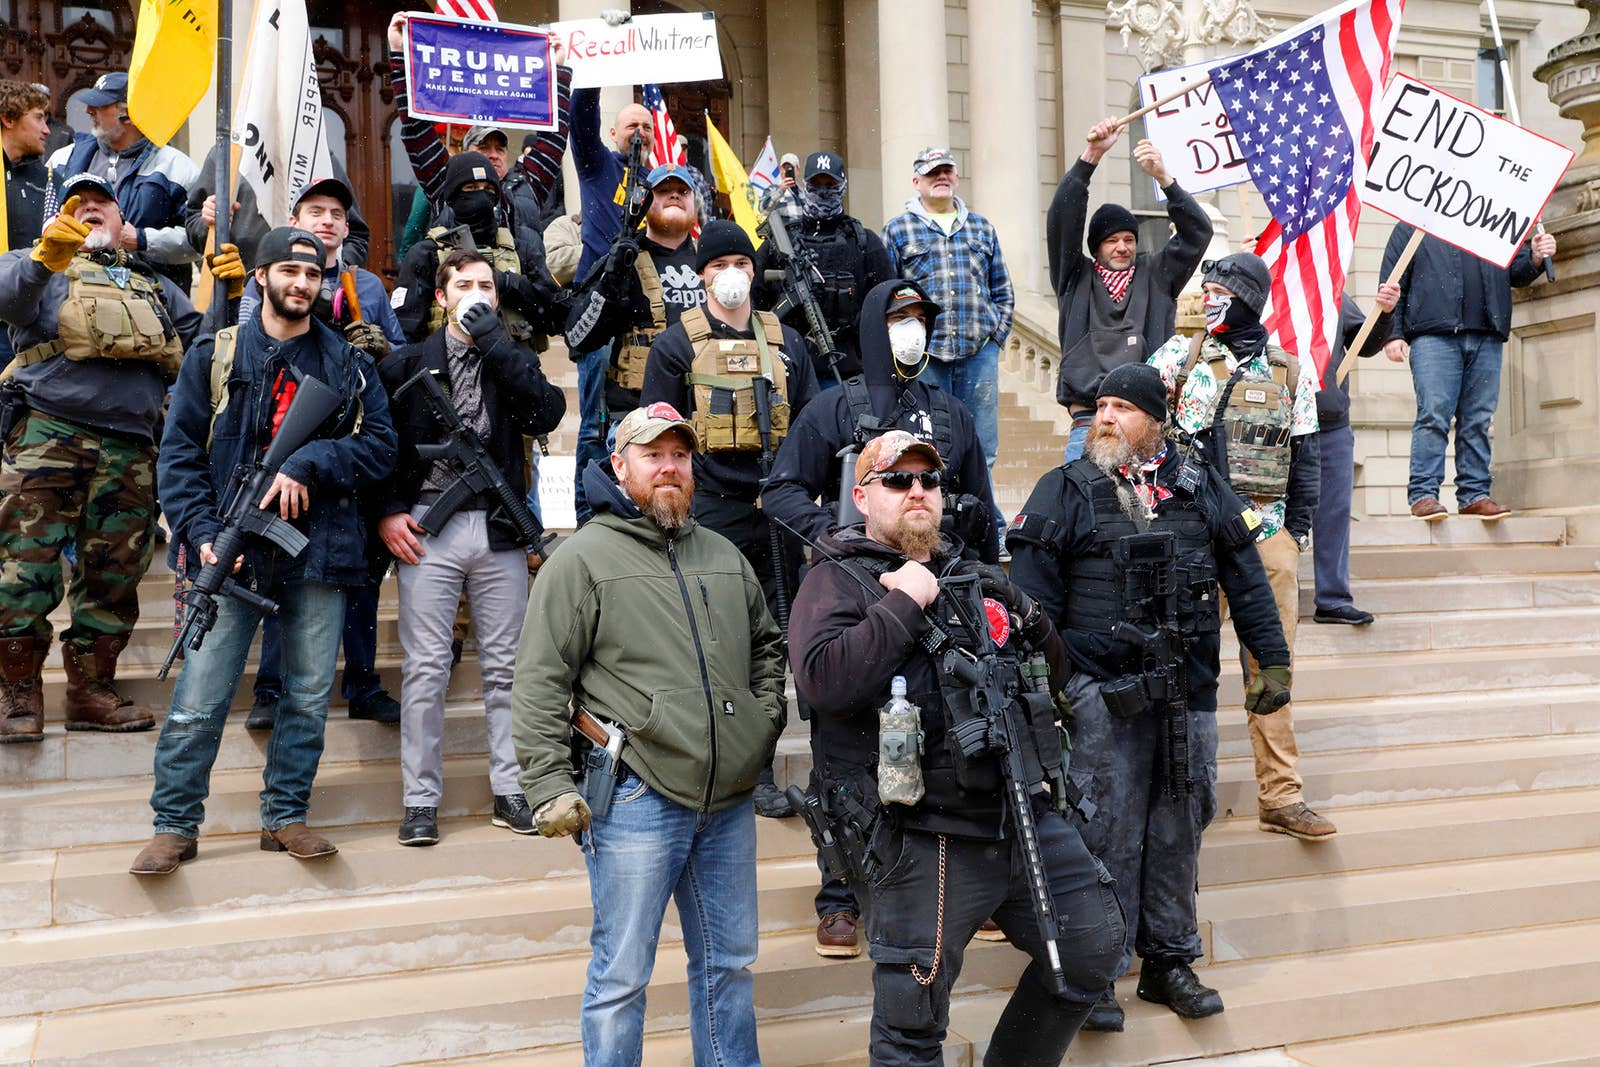 Photo of anti-lock down protests April 16, 2019. Attributed to Jeff Kowalsky / Getty Images and linked from Buzzfeed News.